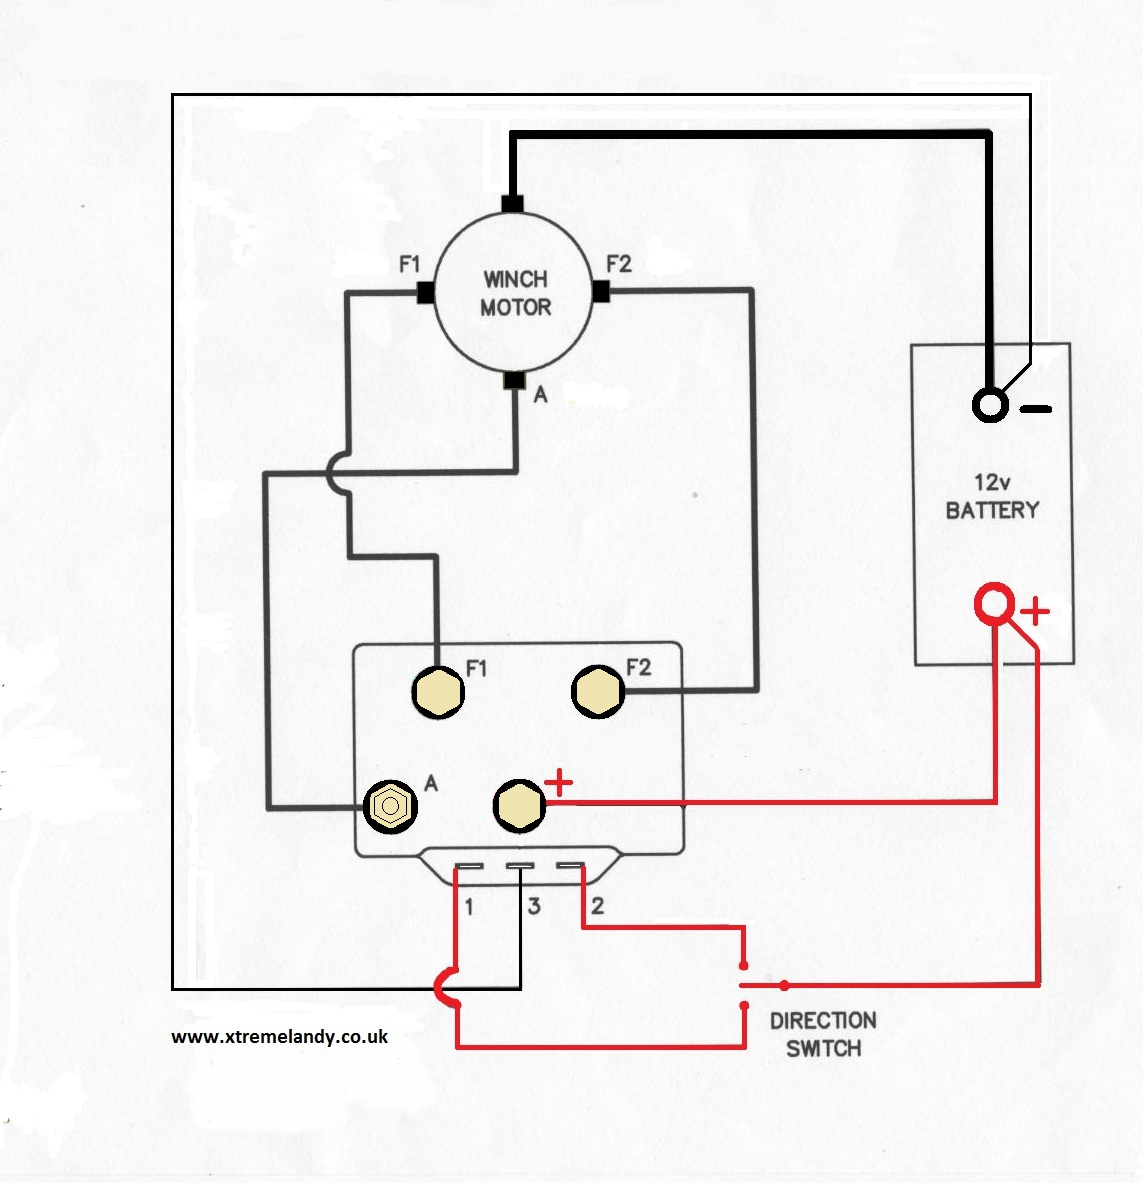 albright wiring diagram image wiring diagram for atv winch the wiring diagram readingrat net warn vr8000 wiring diagram at readyjetset.co